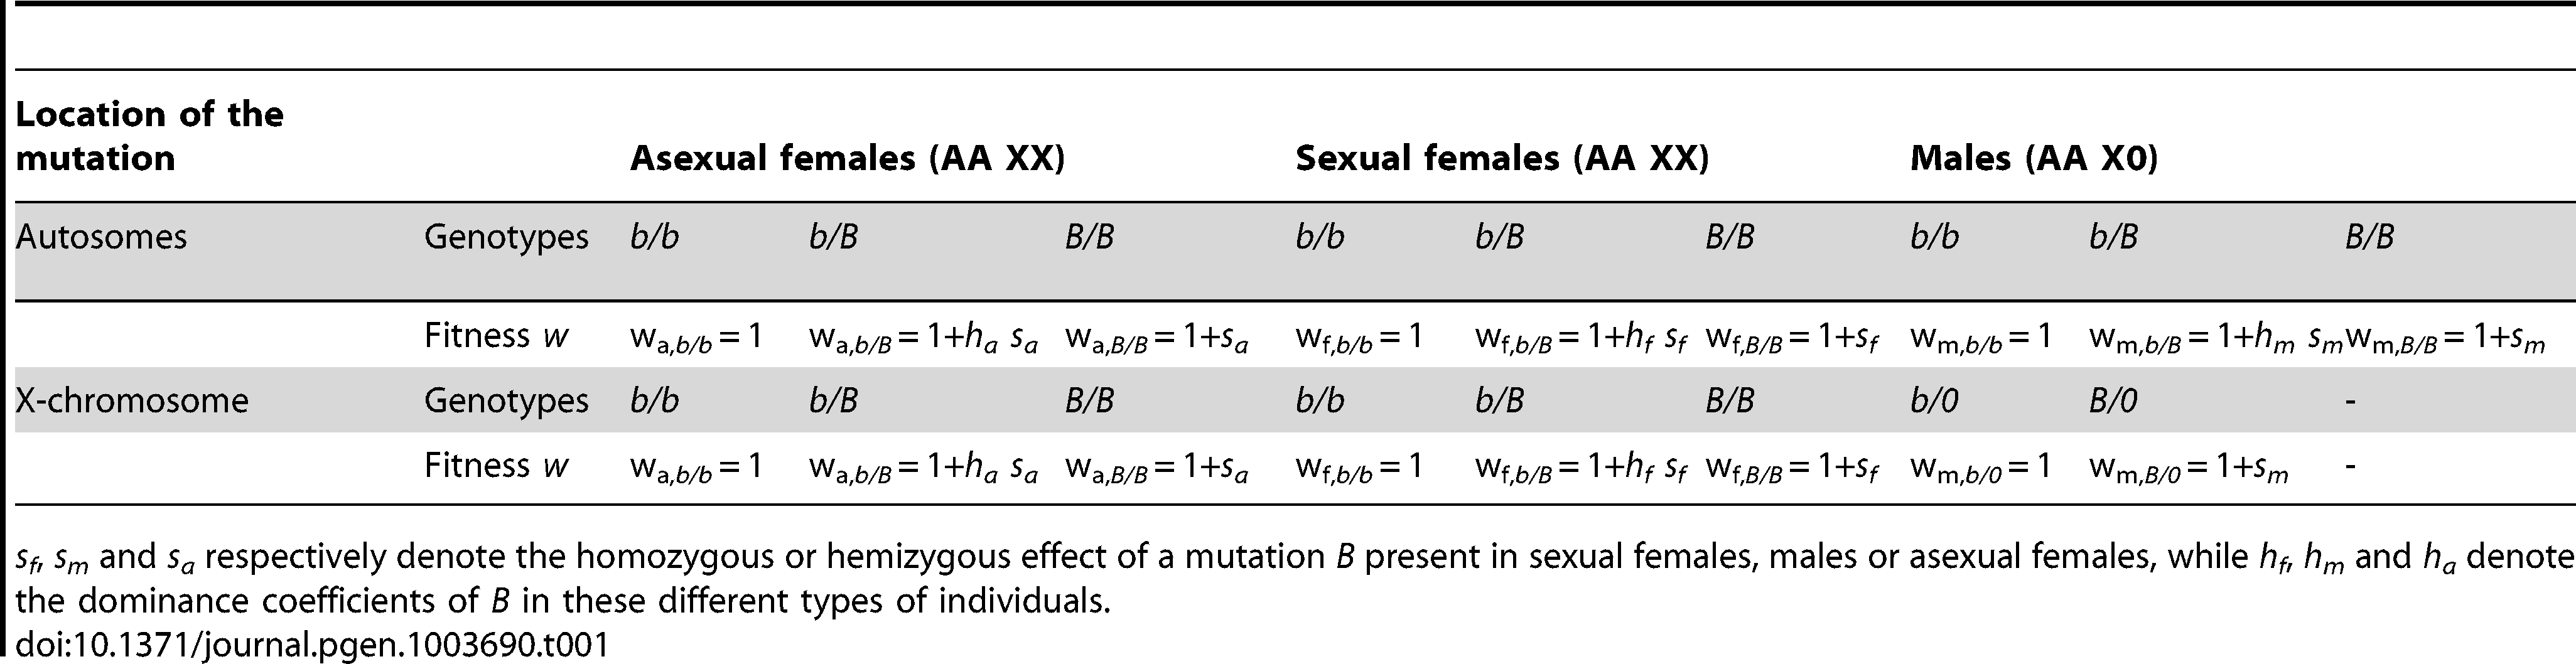 Model of the effects on fitness (<i>w</i>) of a mutation.